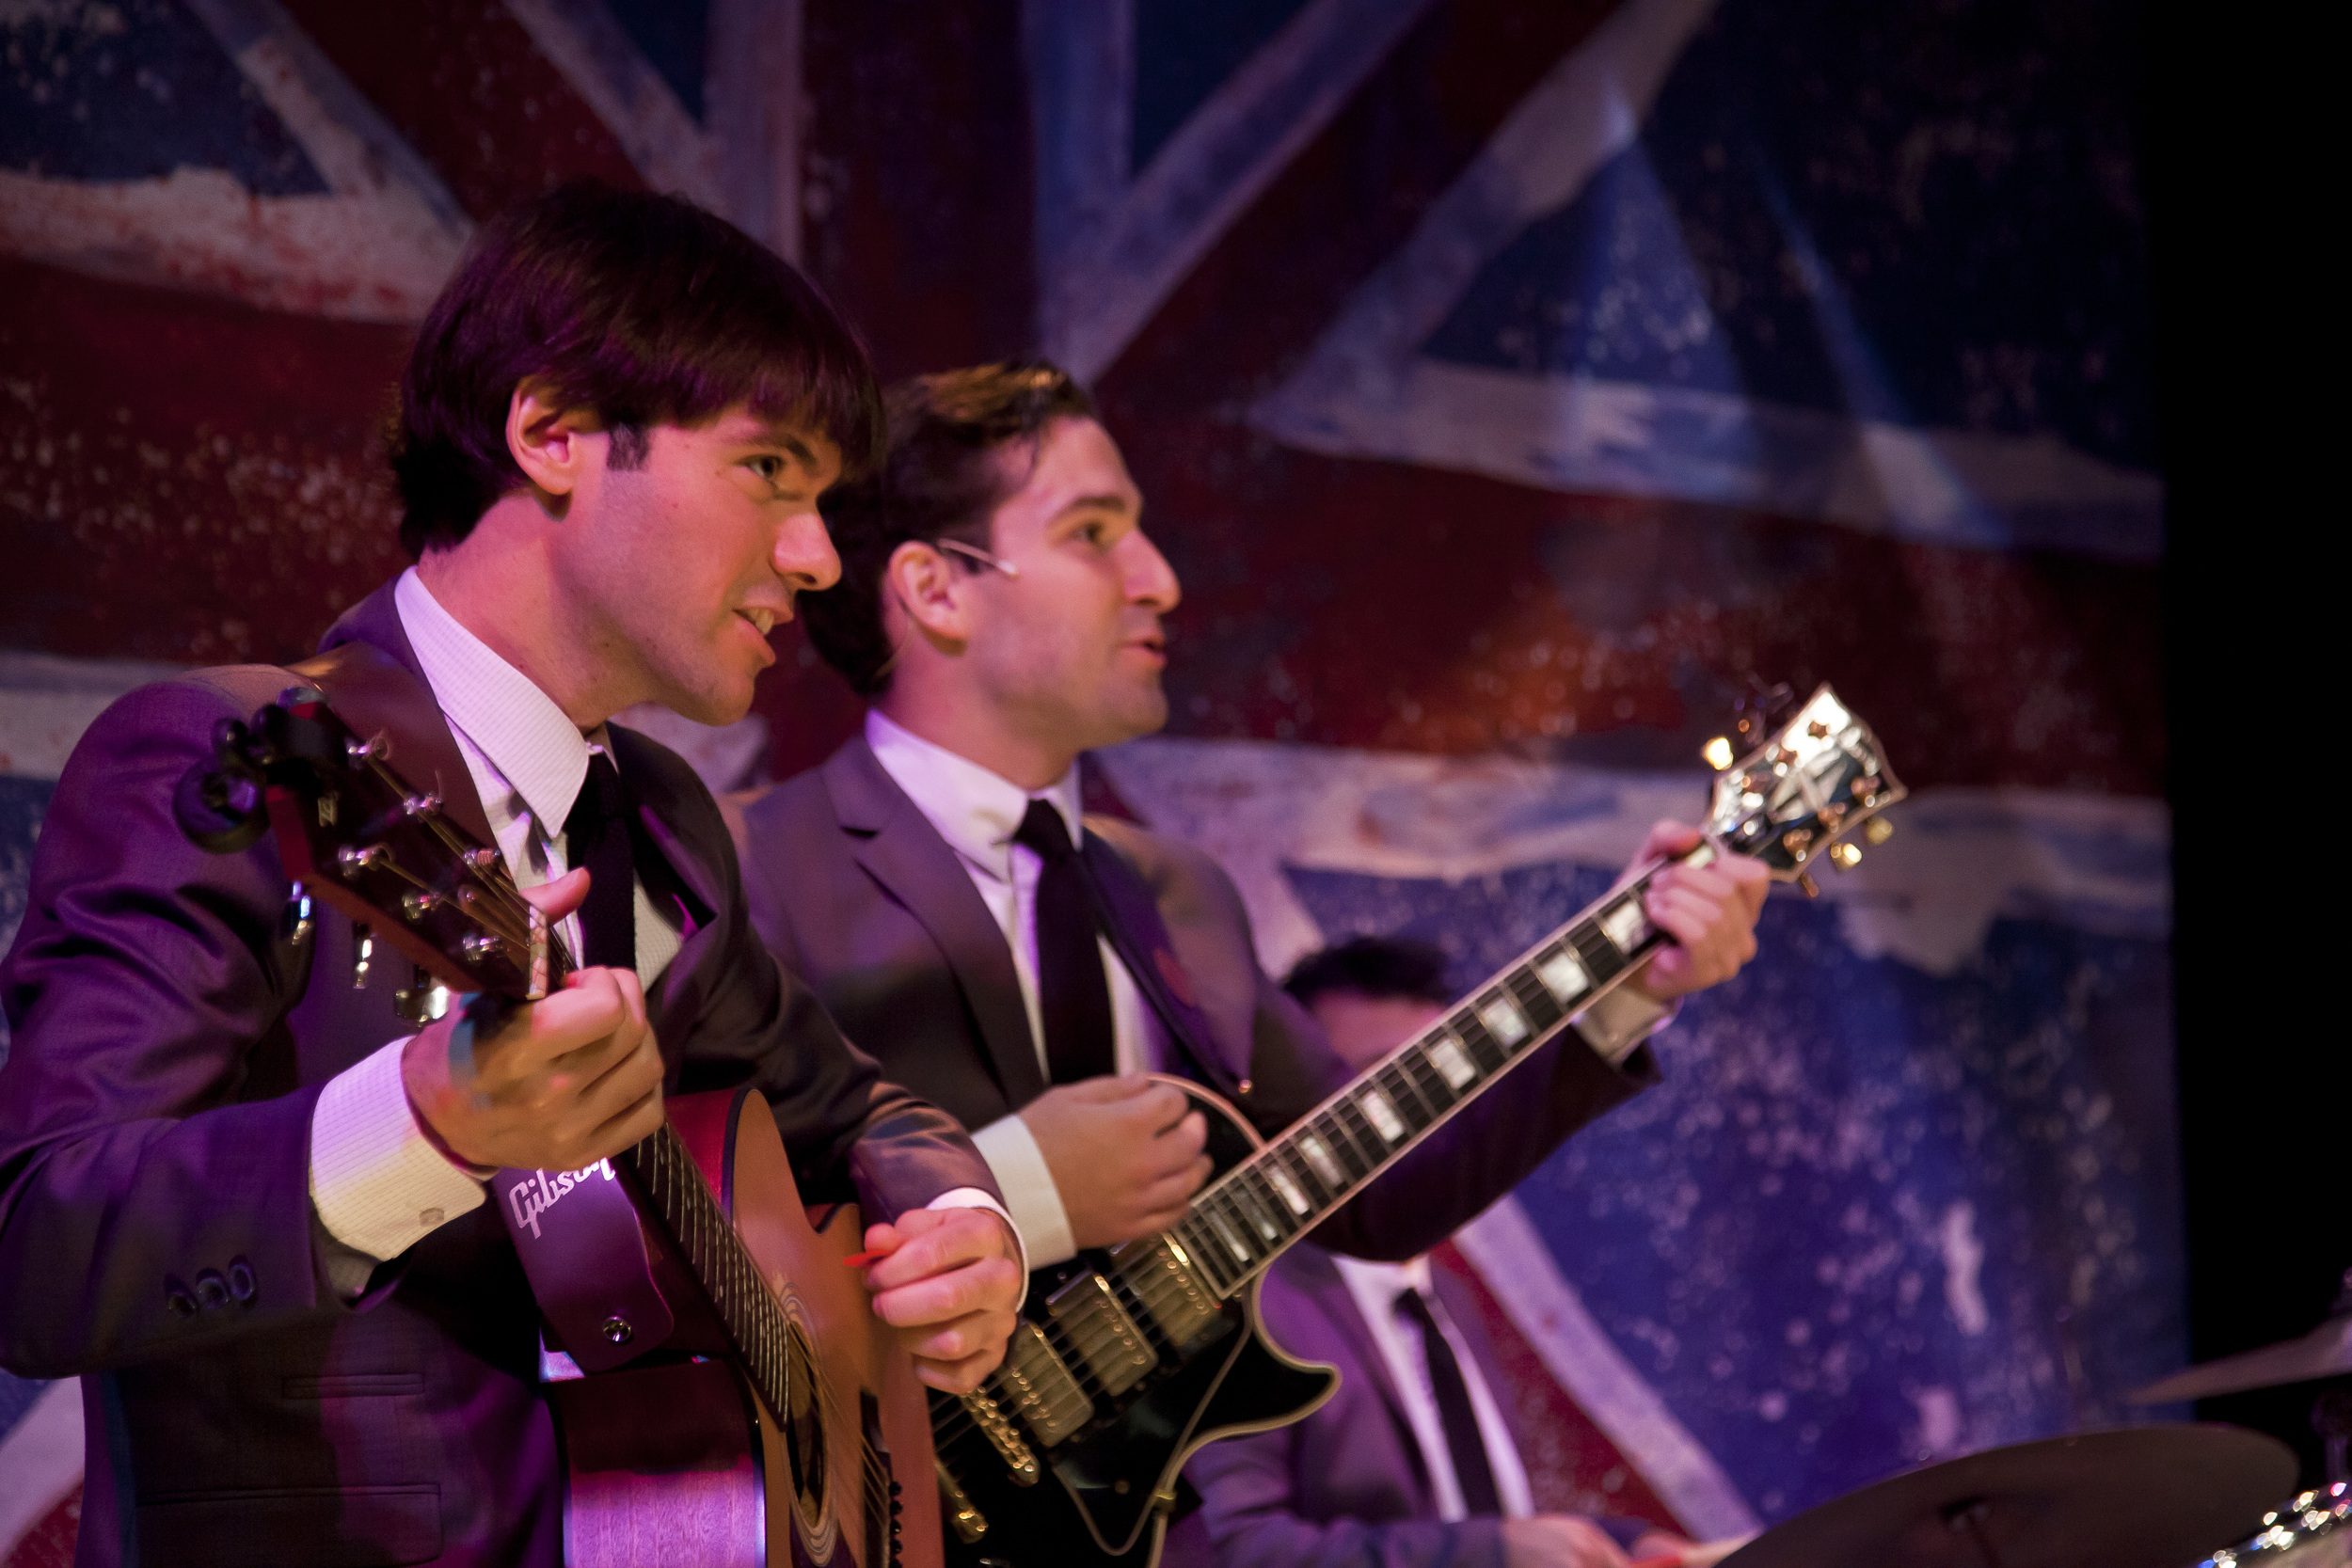 Guitarist/vocalist in The Kraze, the band in One Man, Two Guvnors at Florida Studio Theatre (pictured with James Zap, 2015)